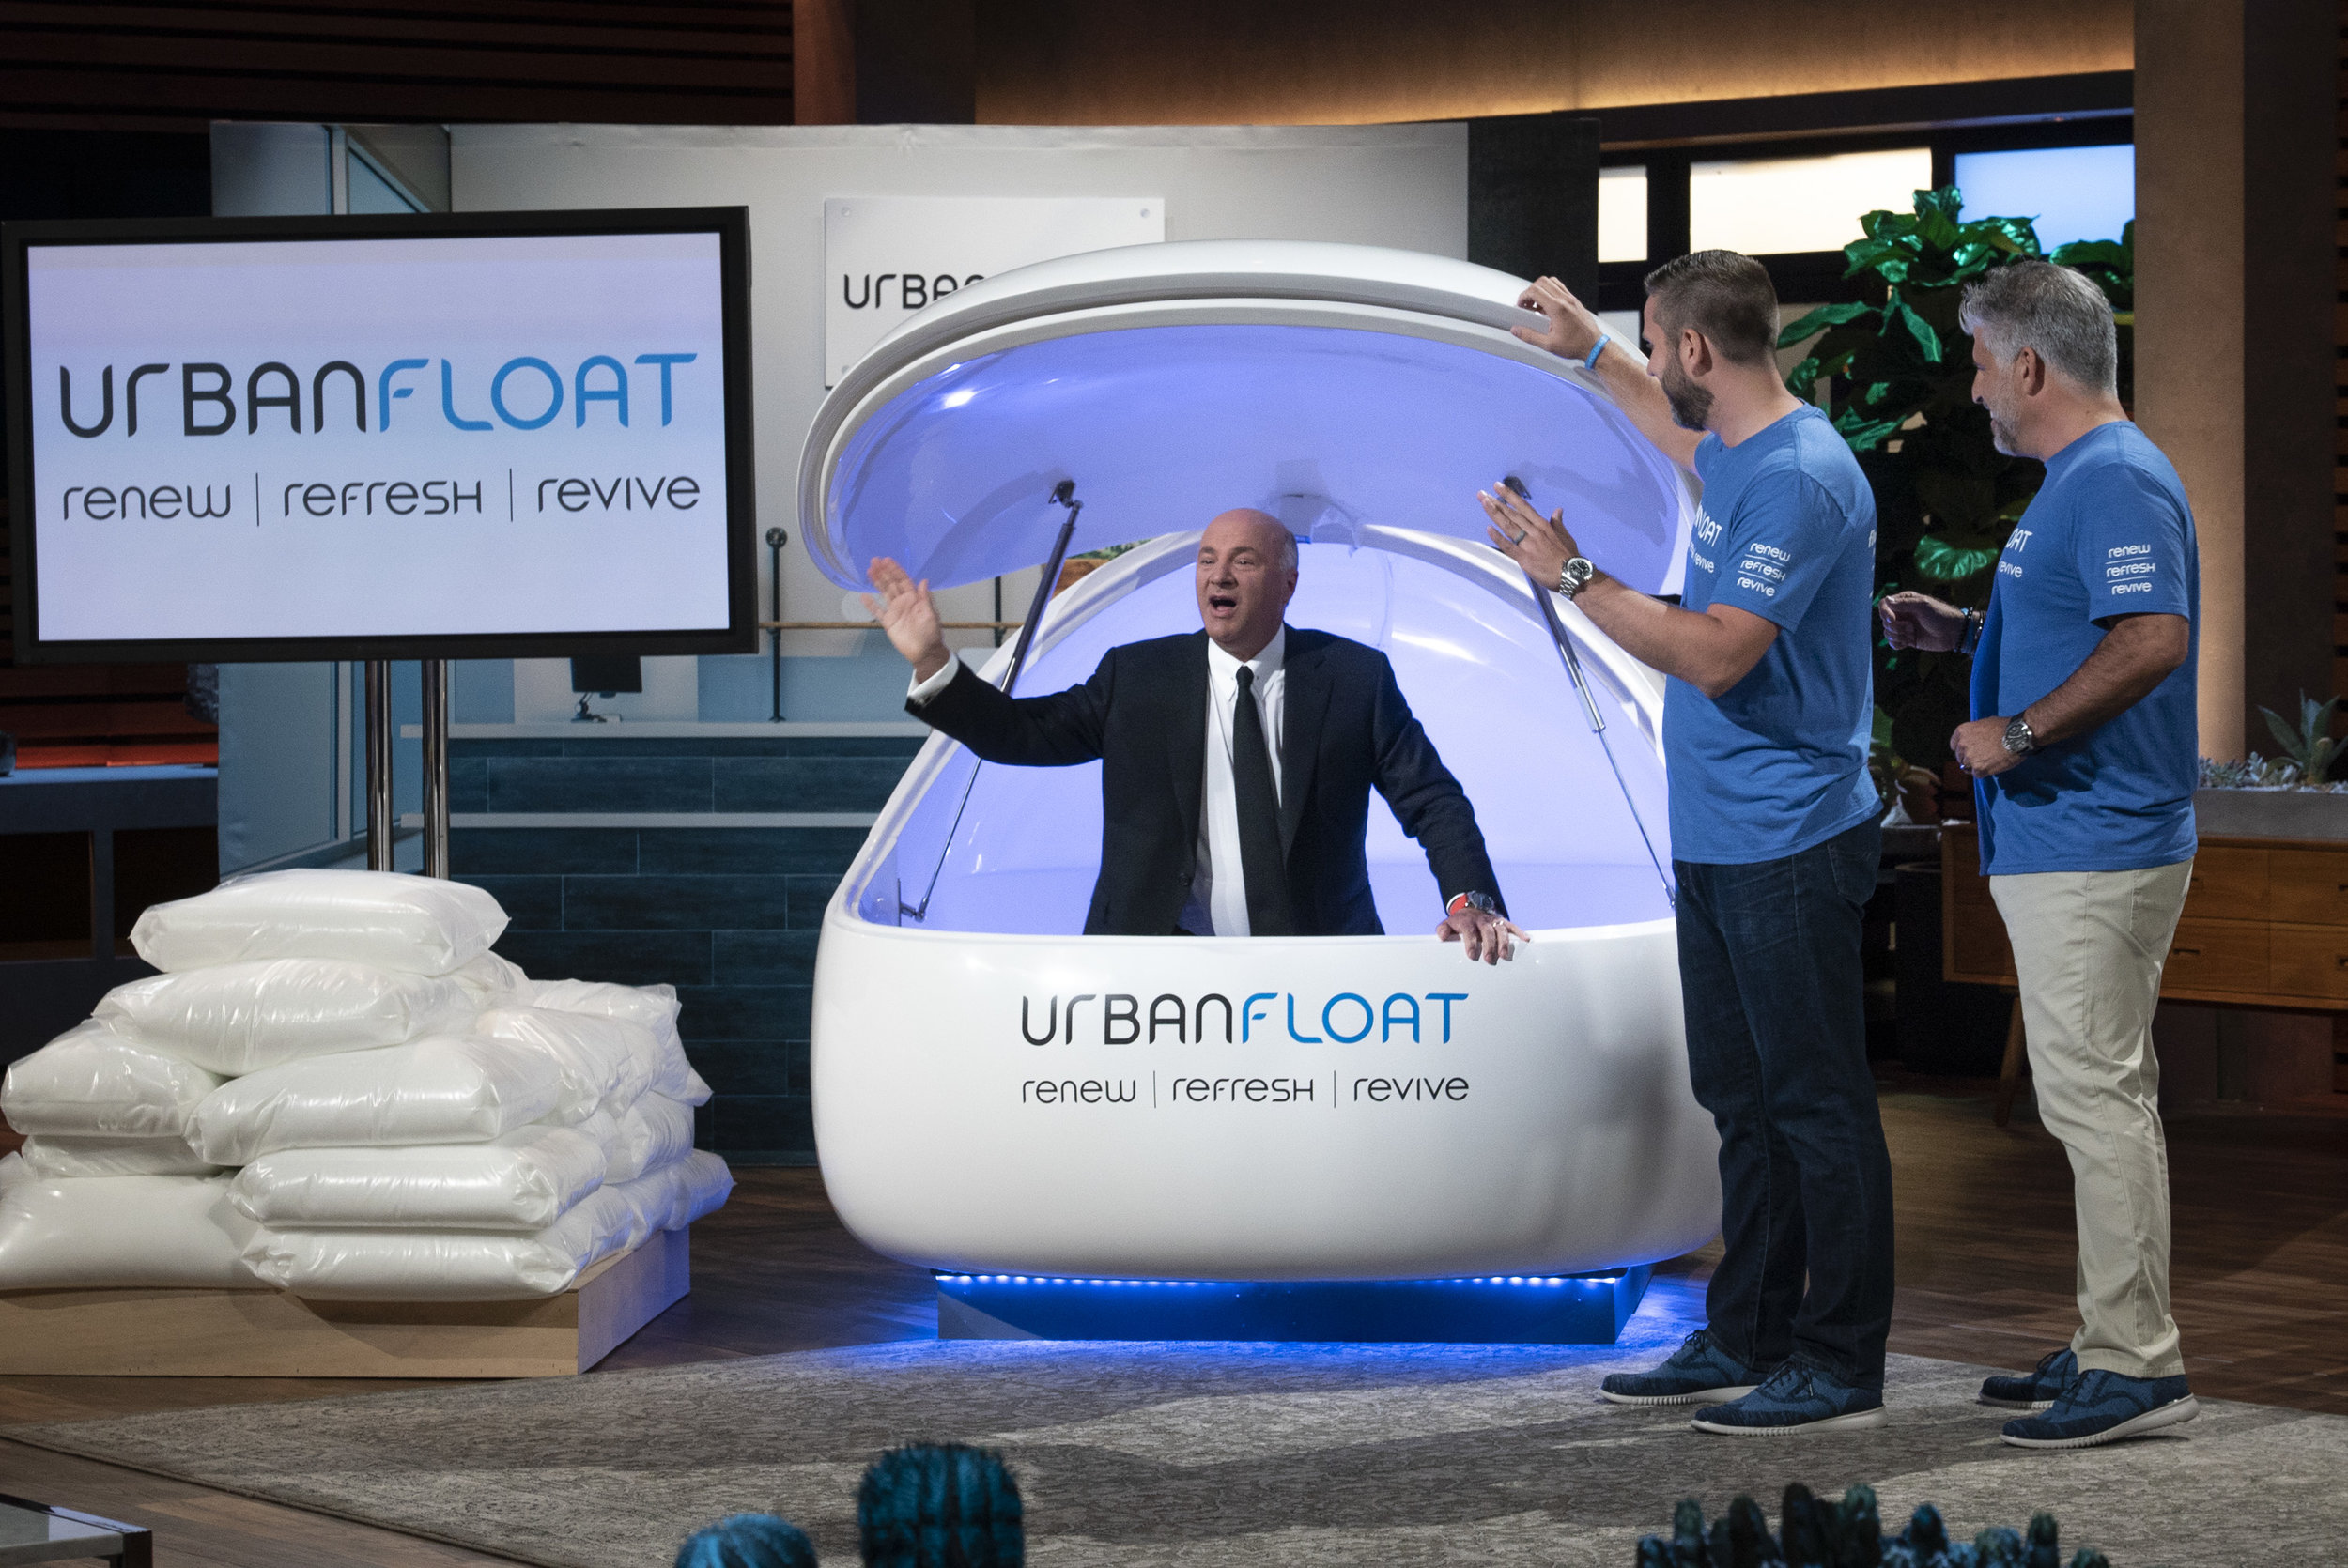 Urban Float on Shark Tank, Joe Beaudry, Scott Swerland, Kevin O'Leary